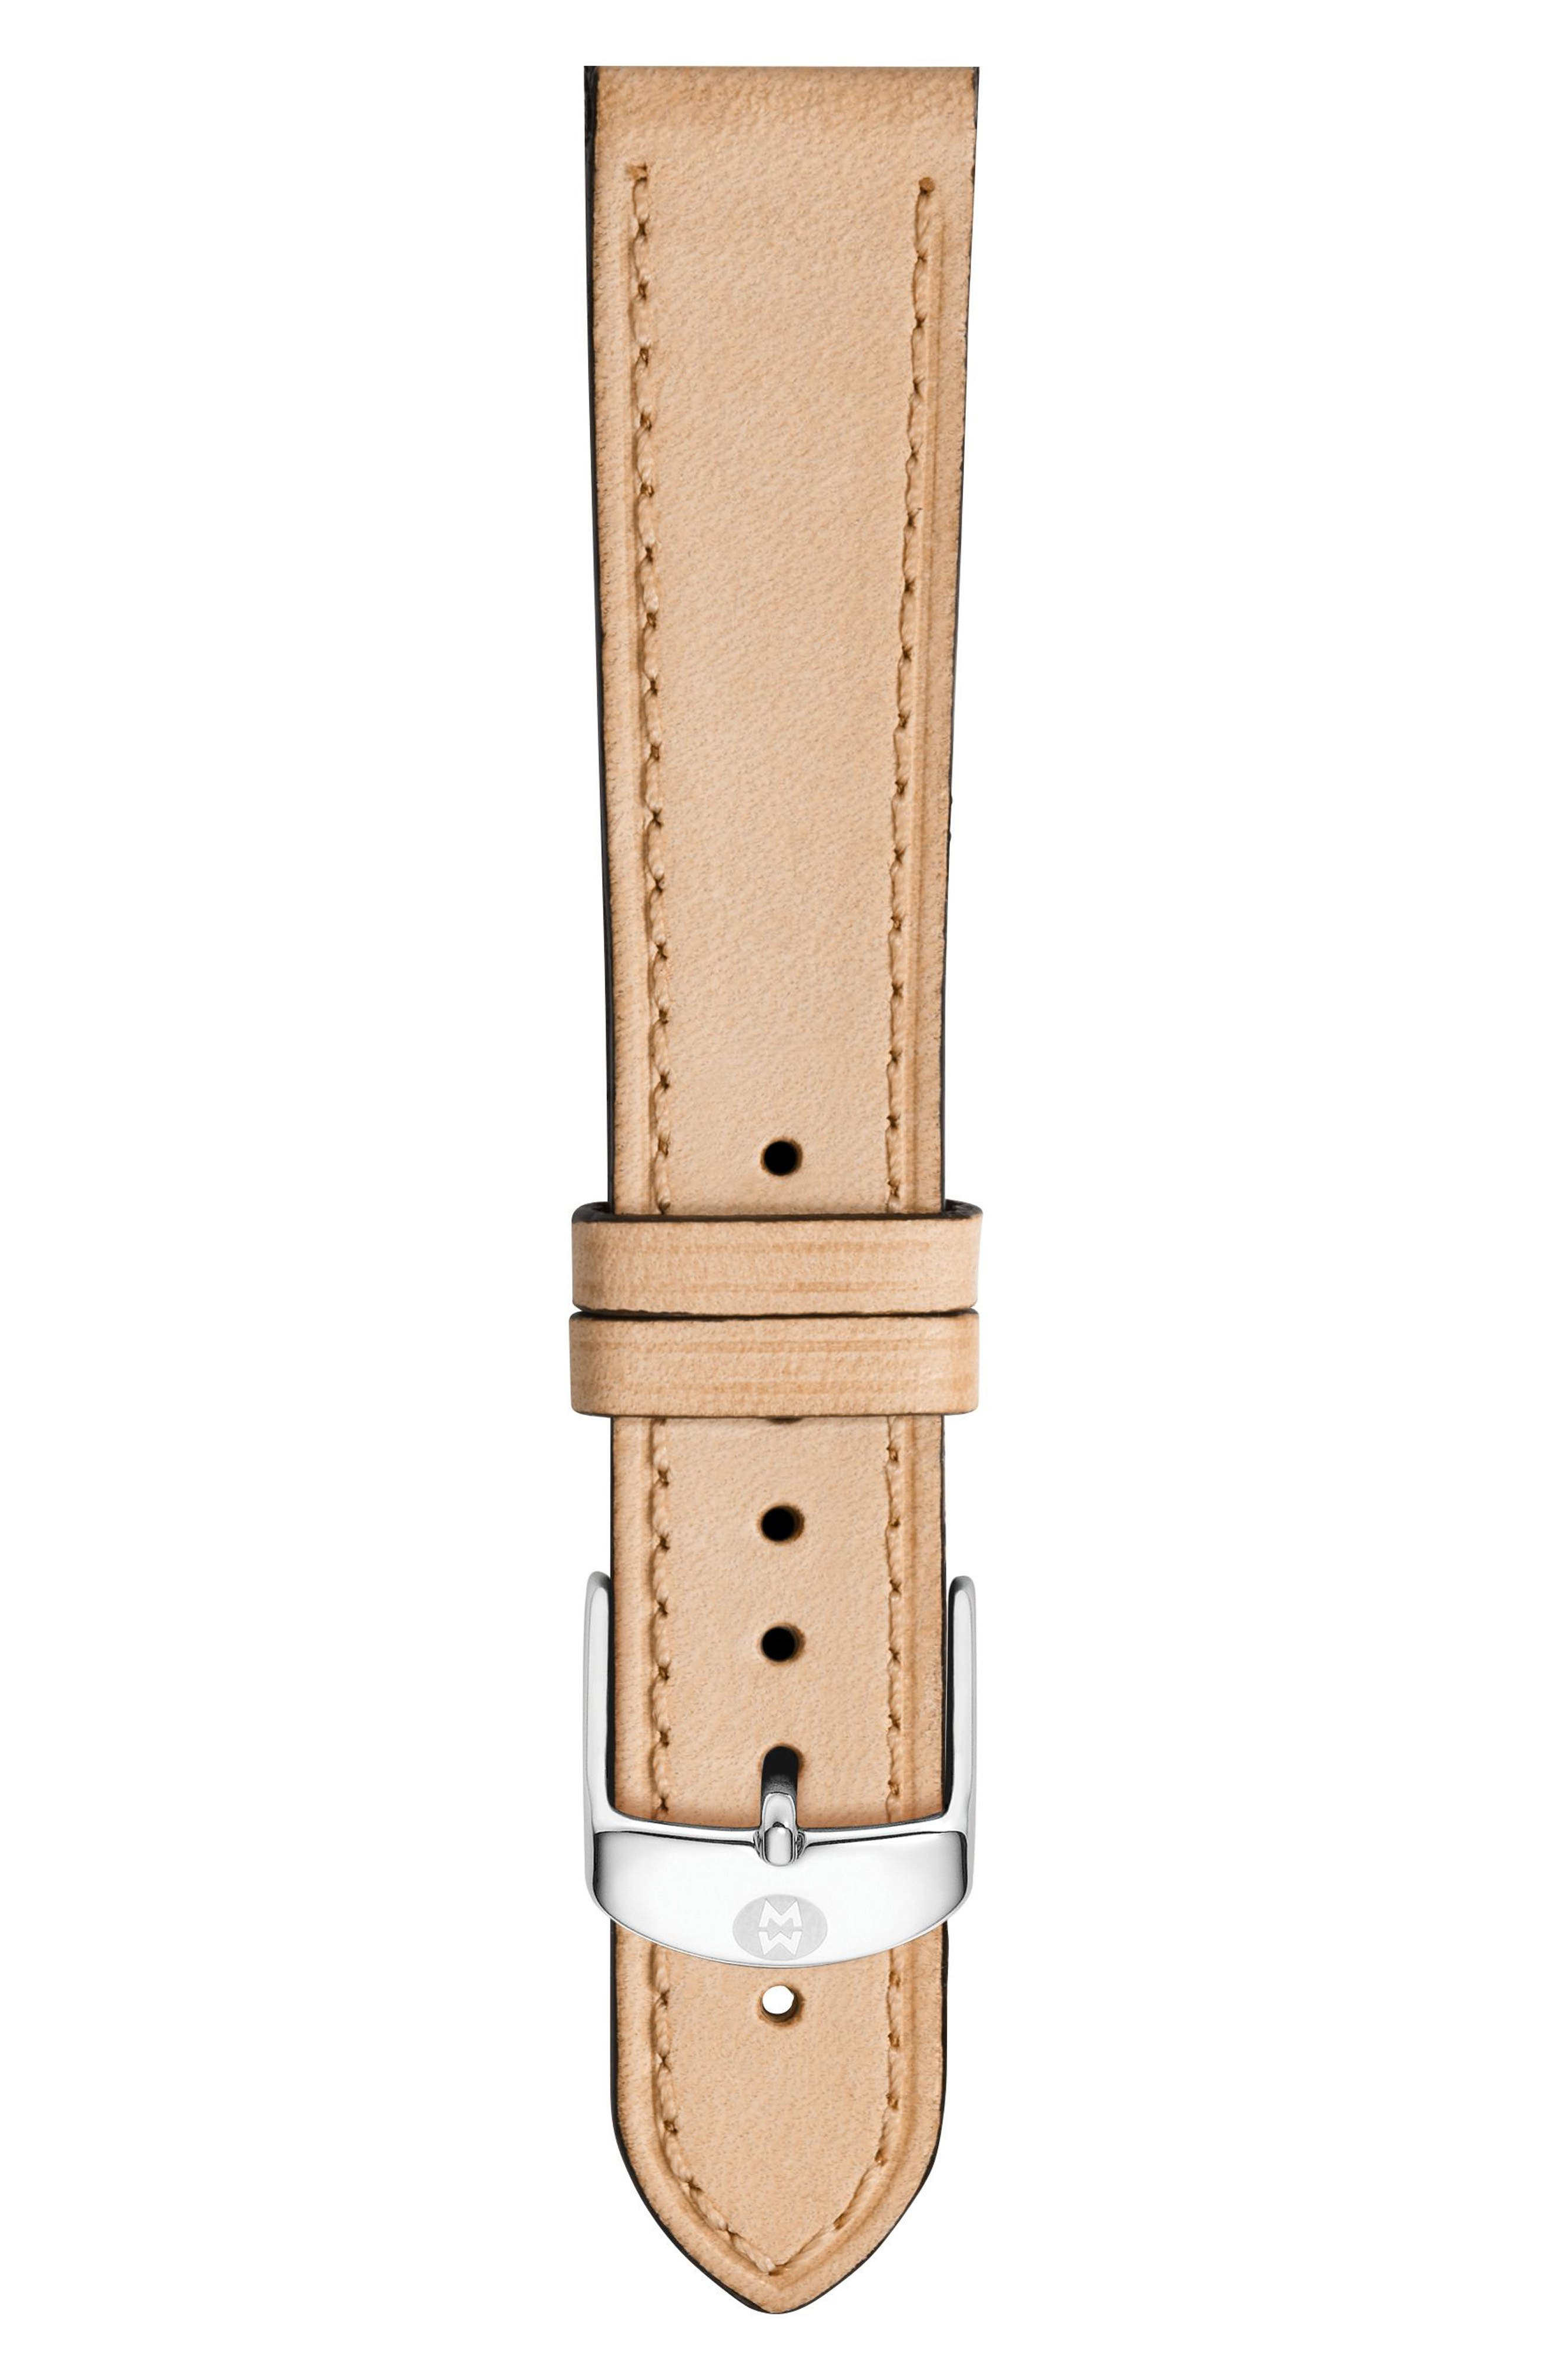 16mm Calfskin Leather Watch Strap,                             Main thumbnail 1, color,                             TAN